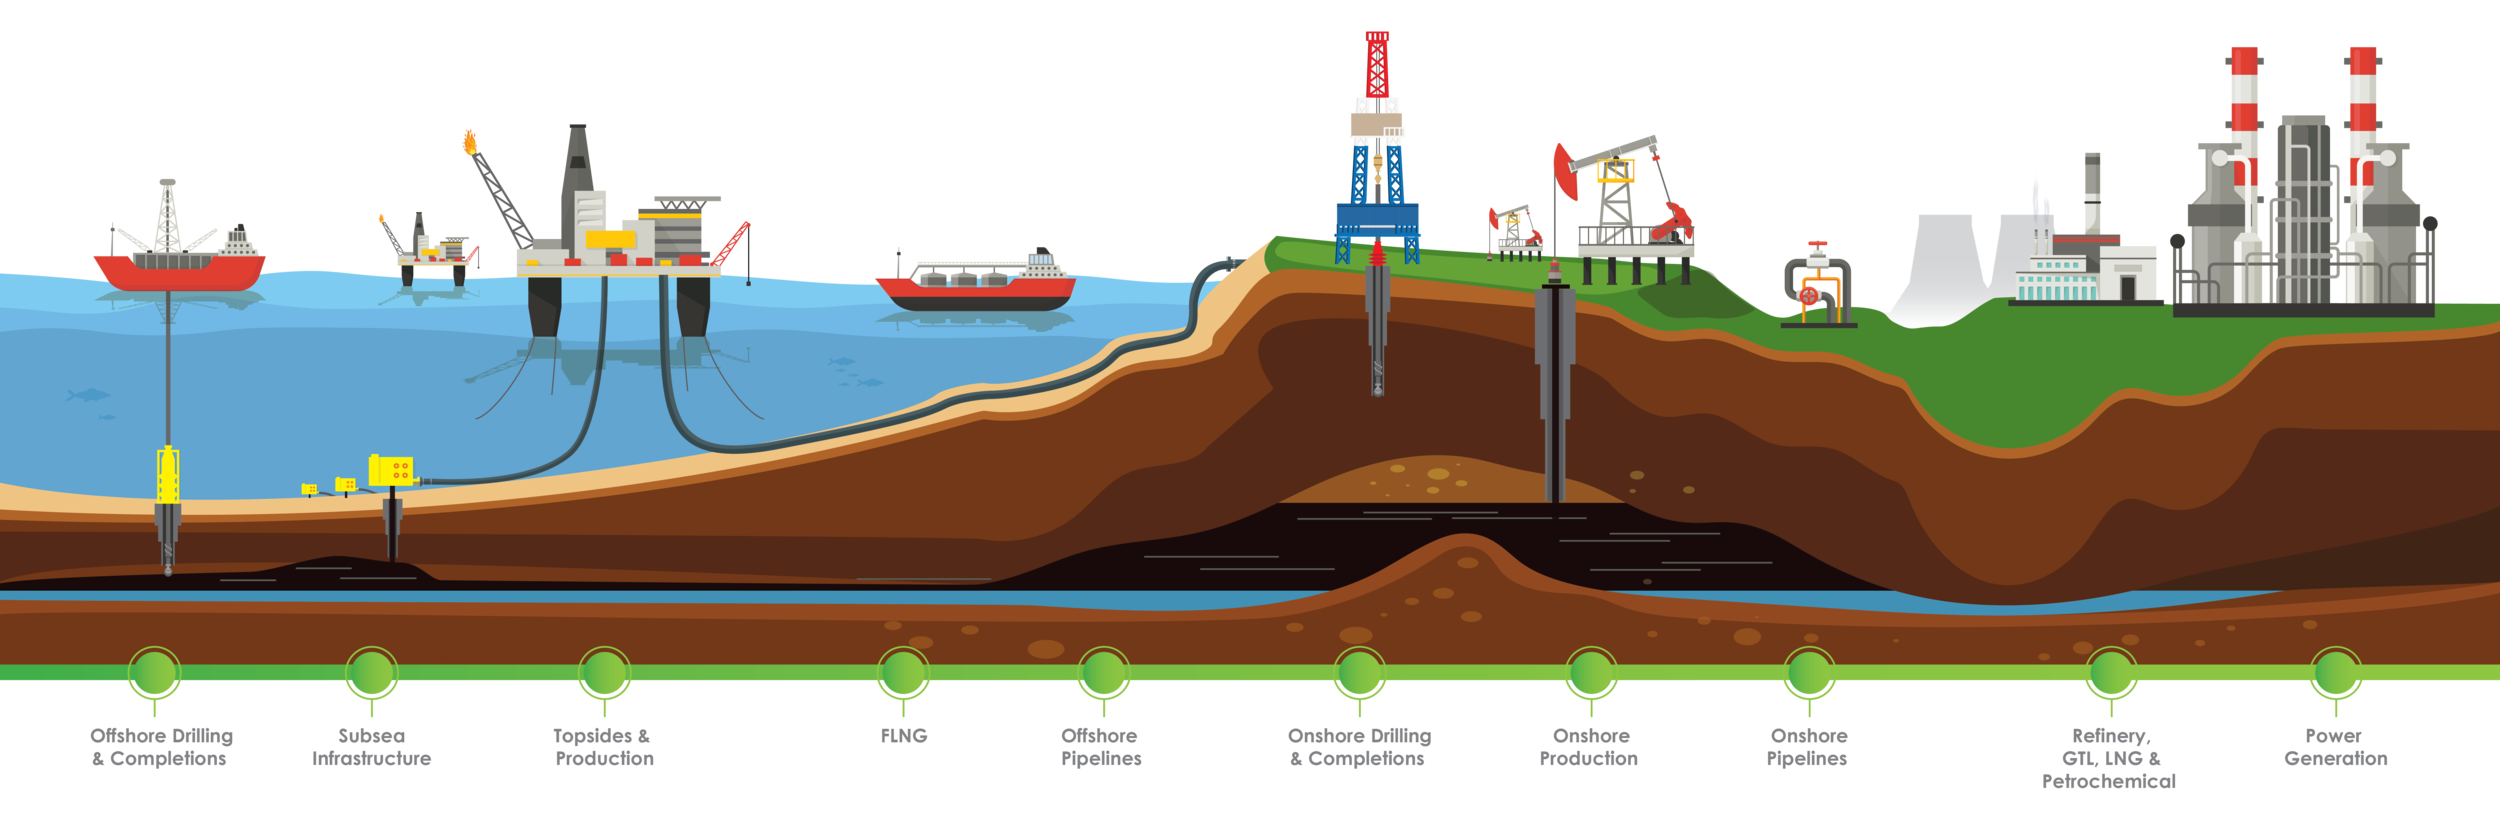 GATE Energy - Oil & Gas Industry Diagram-02.png